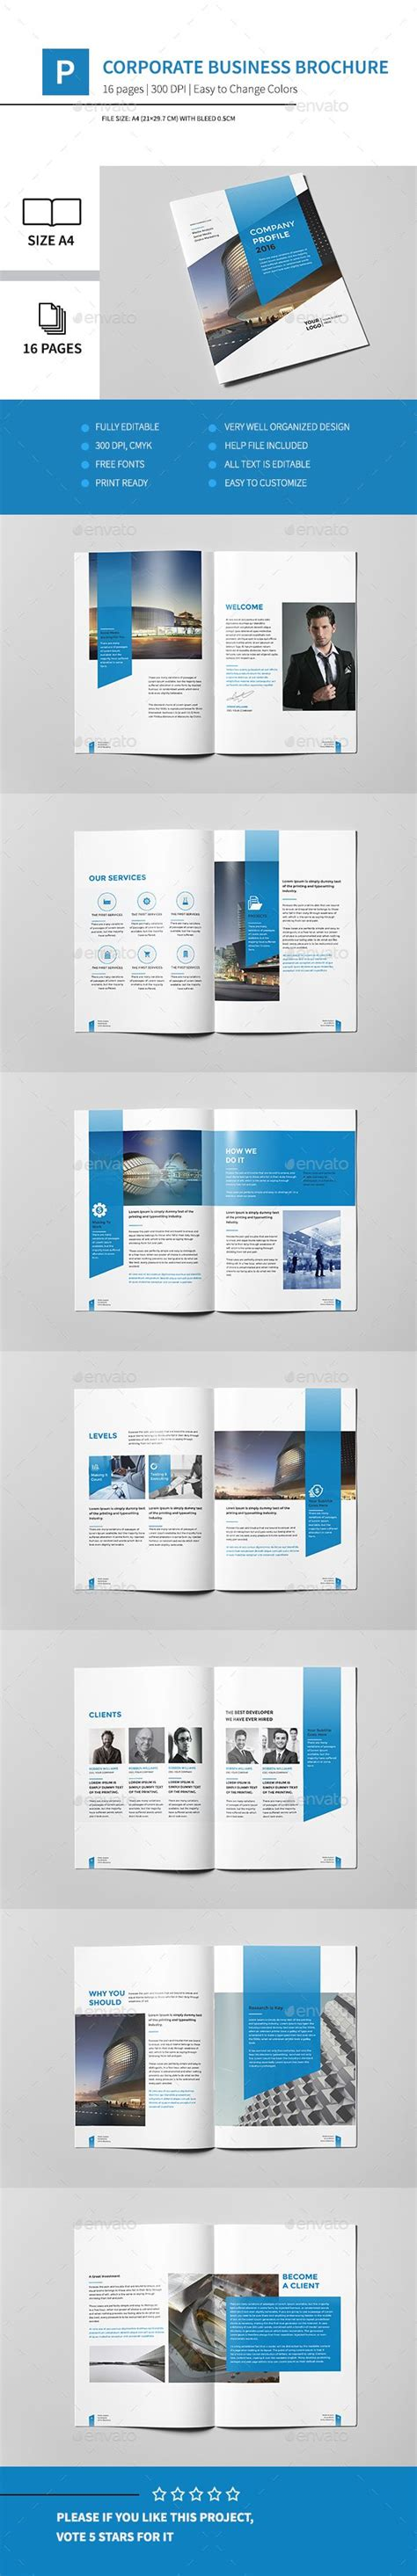 a4 brochure template corporate business brochure 16 pages a4 business